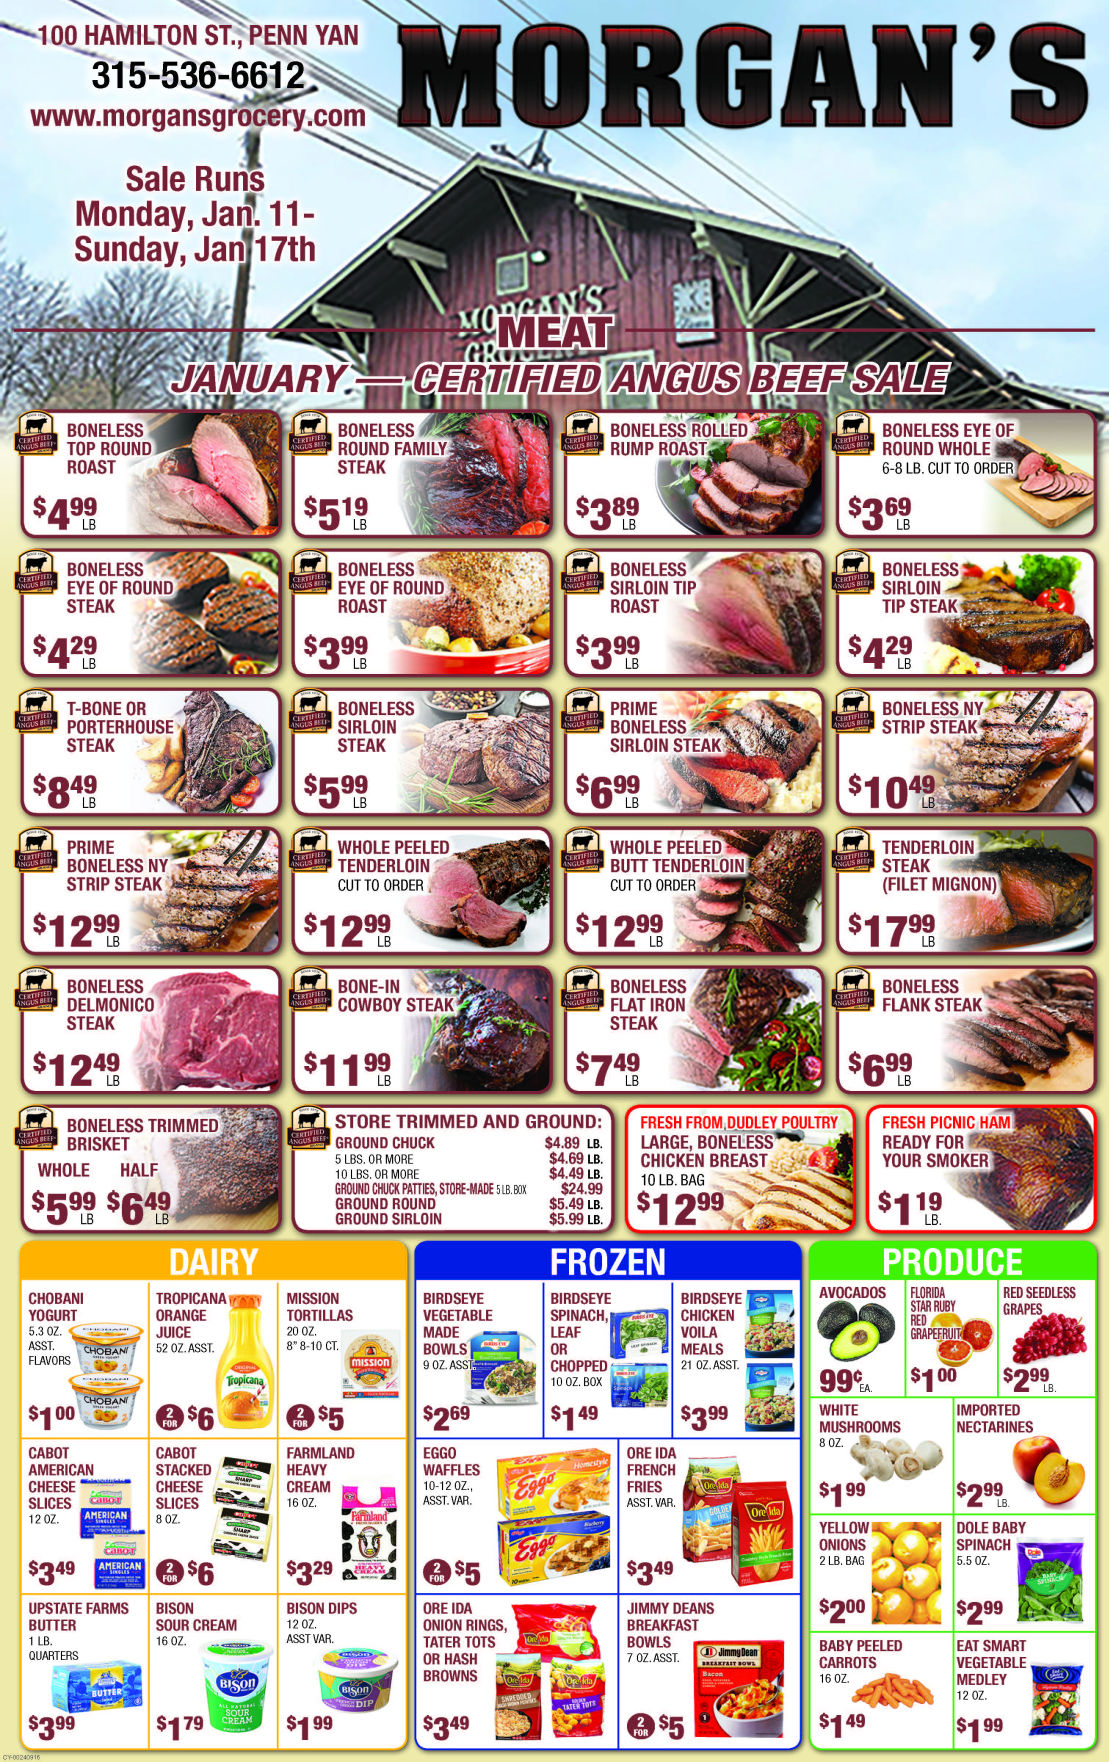 Morgans Grocery January specials